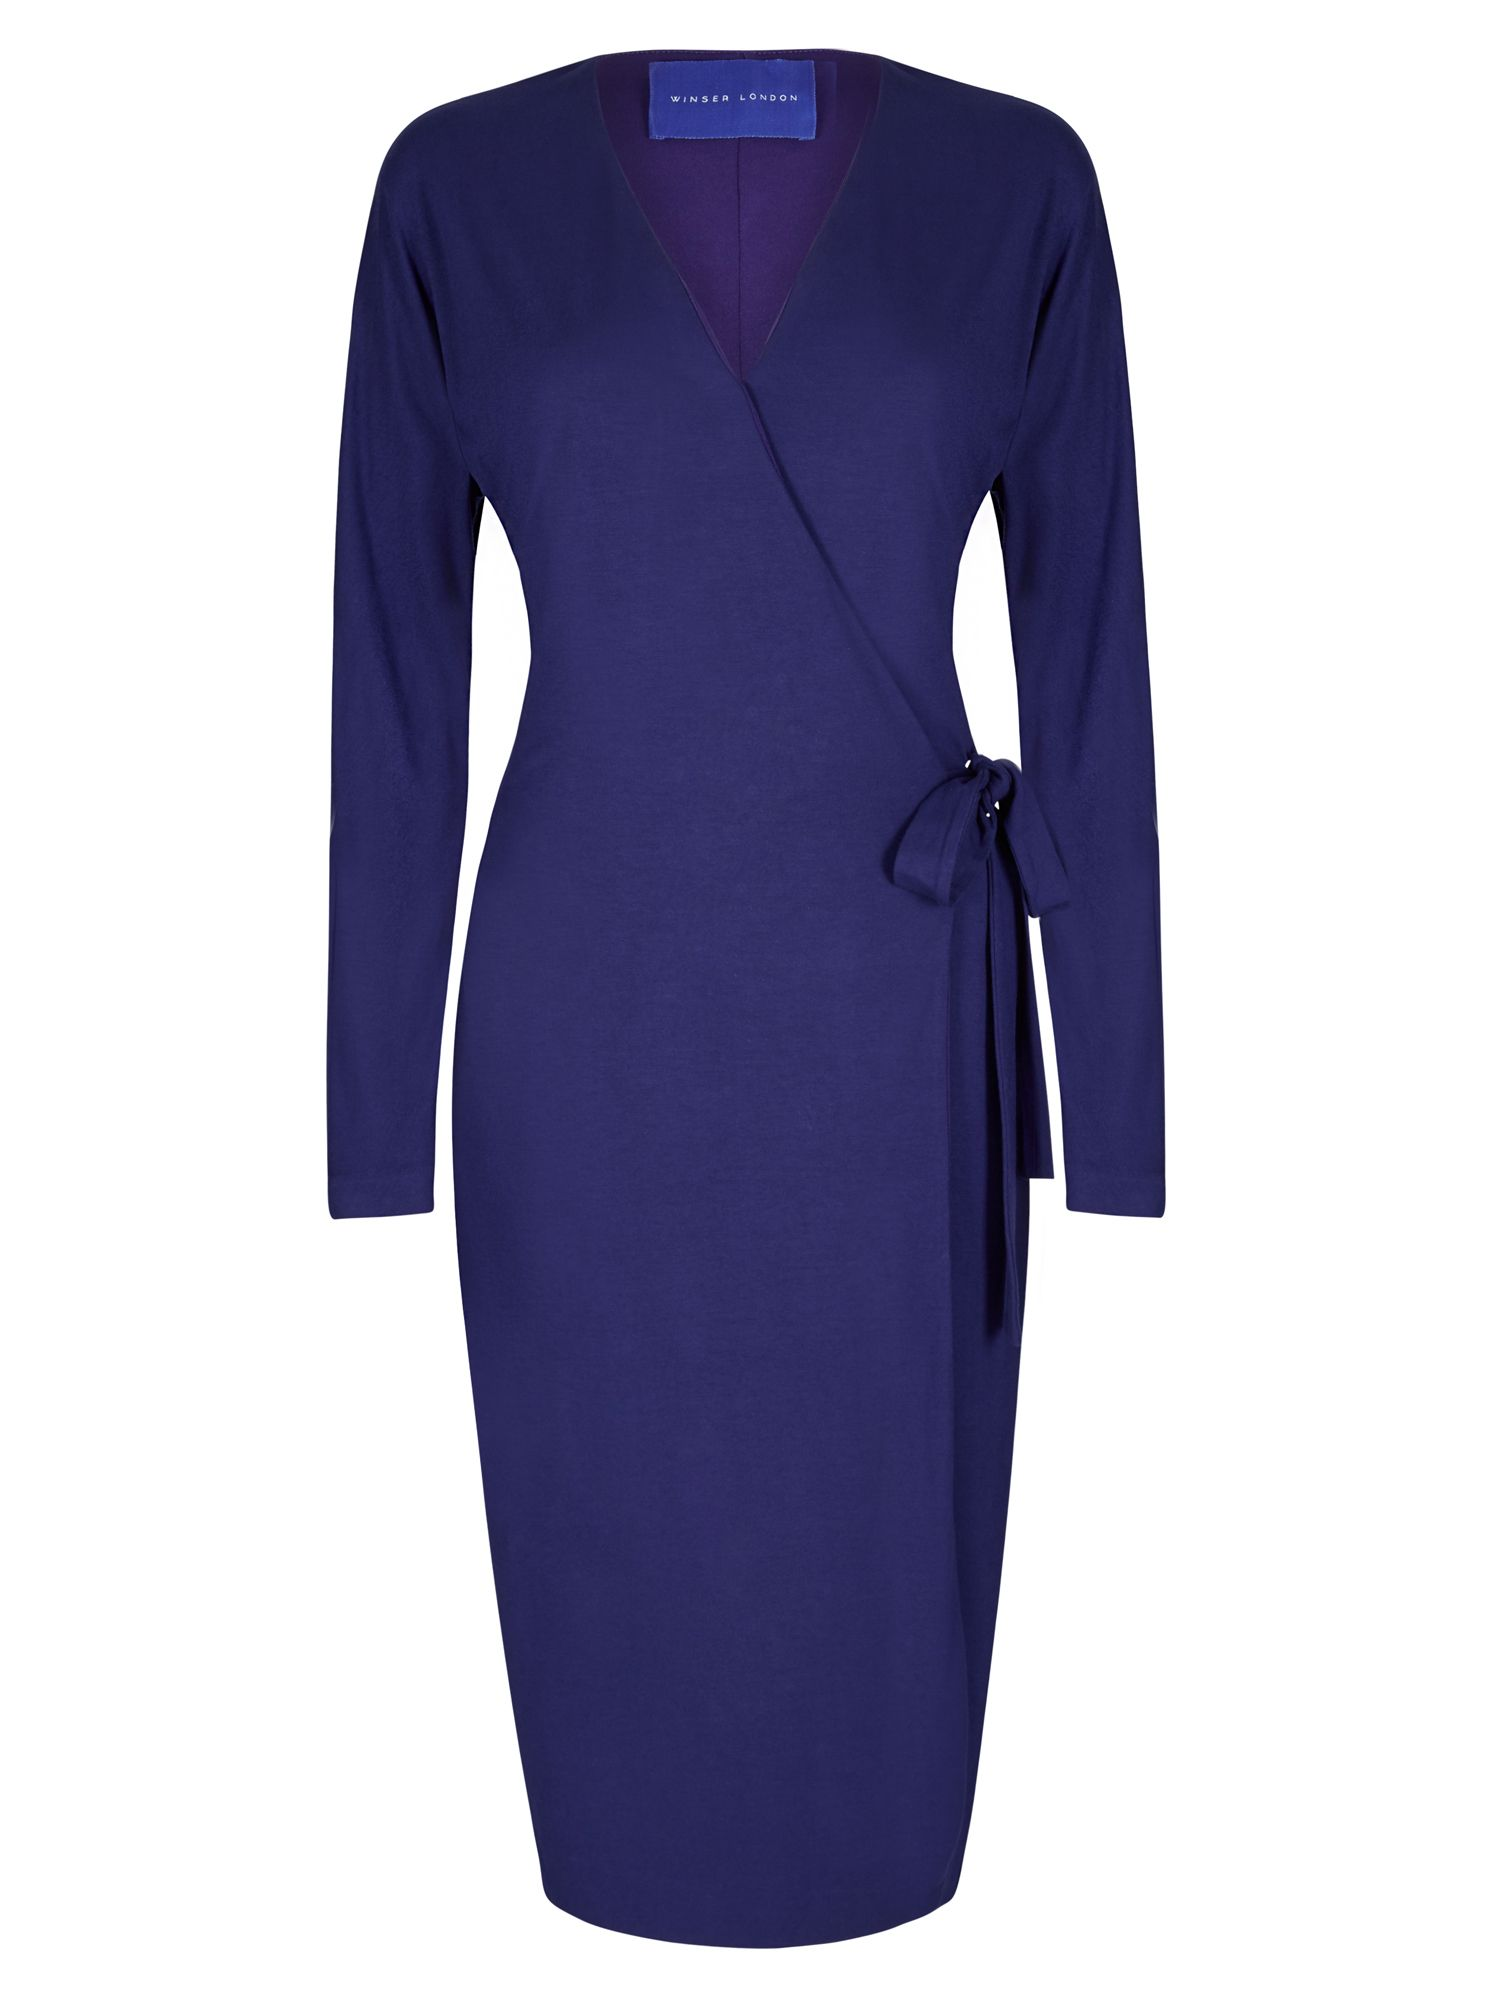 Winser London Wrap Jersey Dress, Blue